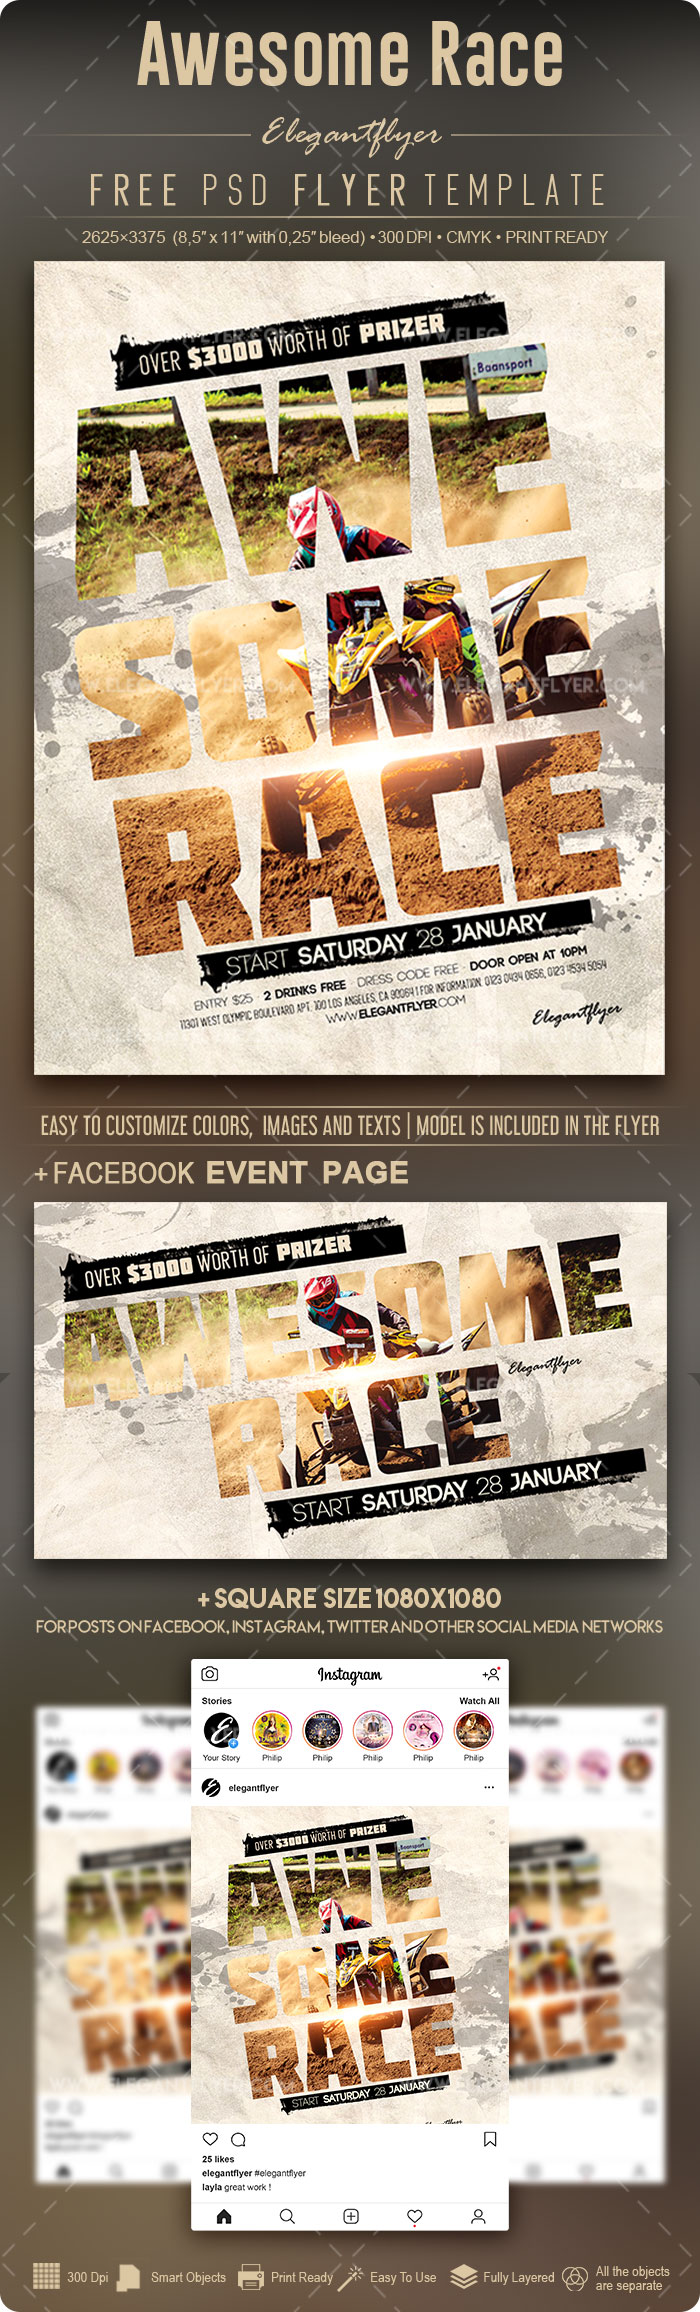 Awesome Race – Free Flyer PSD Template